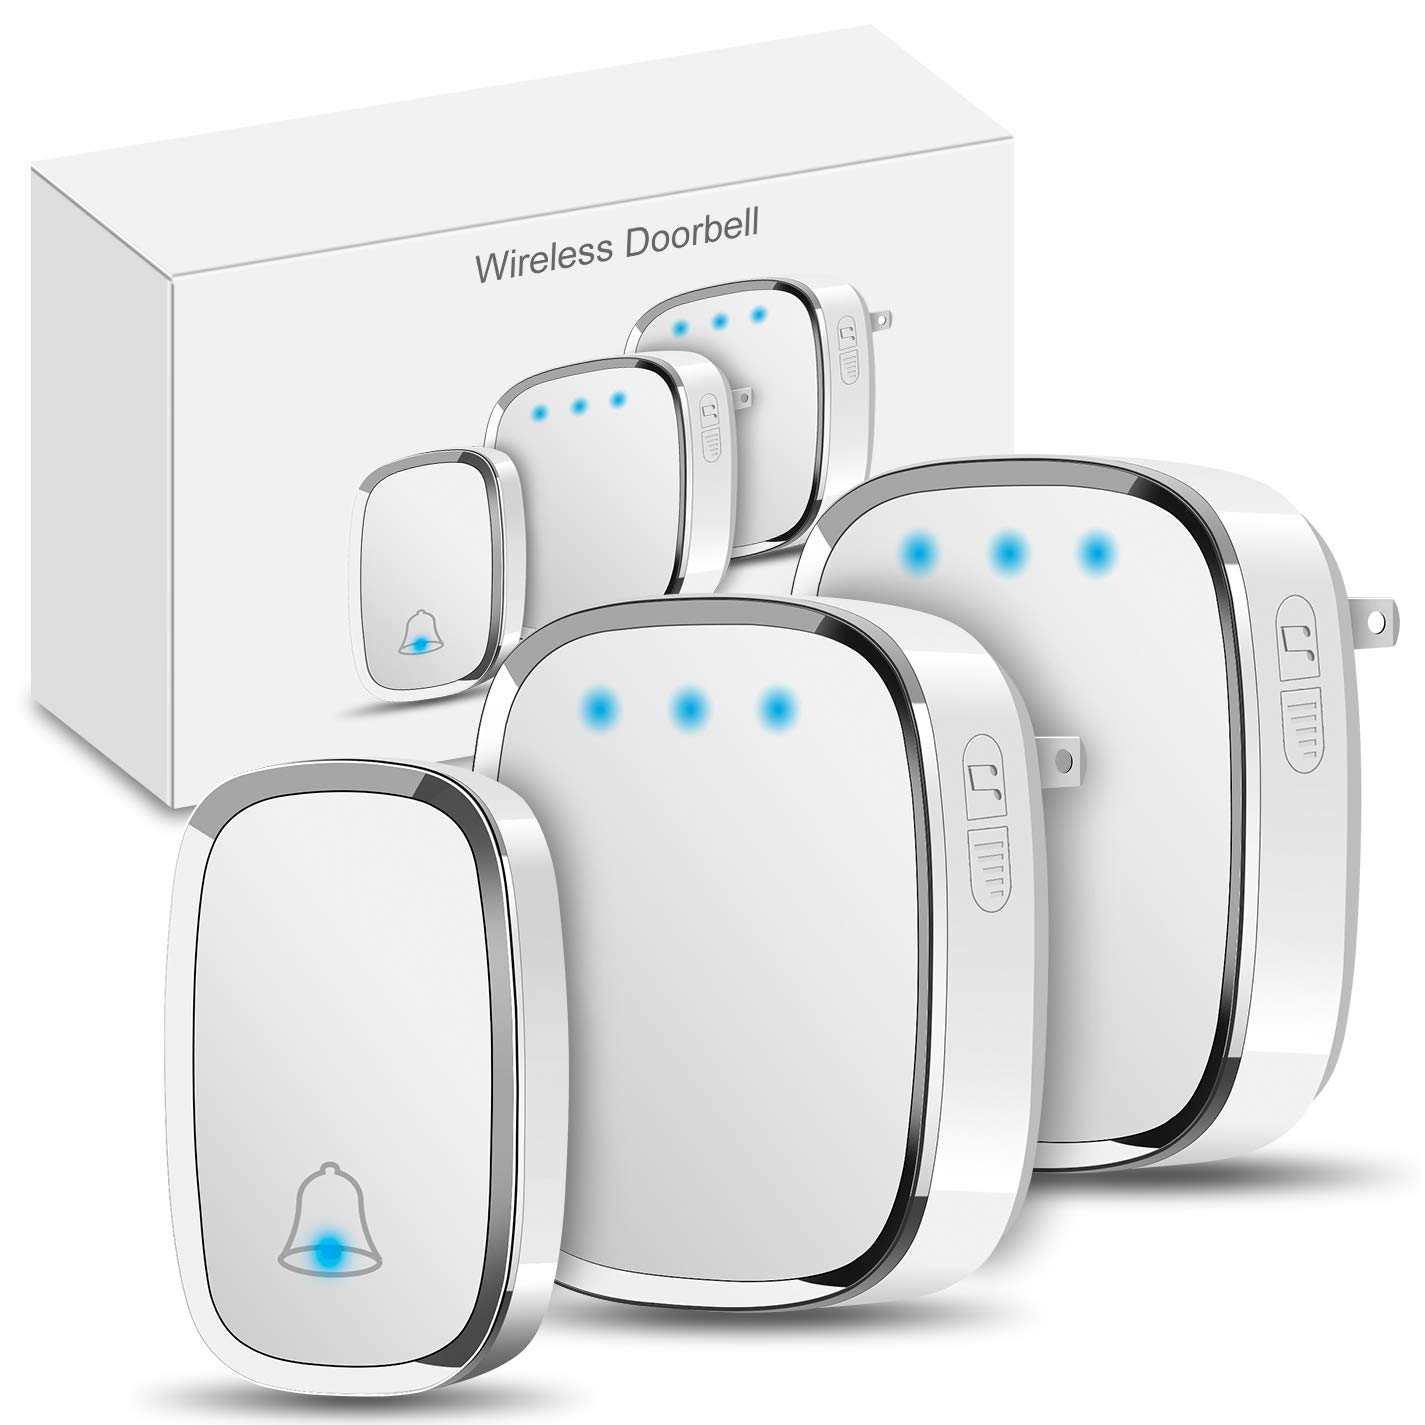 Wireless Doorbell Govee Waterproof Door Bells Chime Kit with LED Flash 1 Push Button and 2 Plug in Receiver 1000 Feet Operating Range 4 Levels Volume 36 Melodies to Choose White